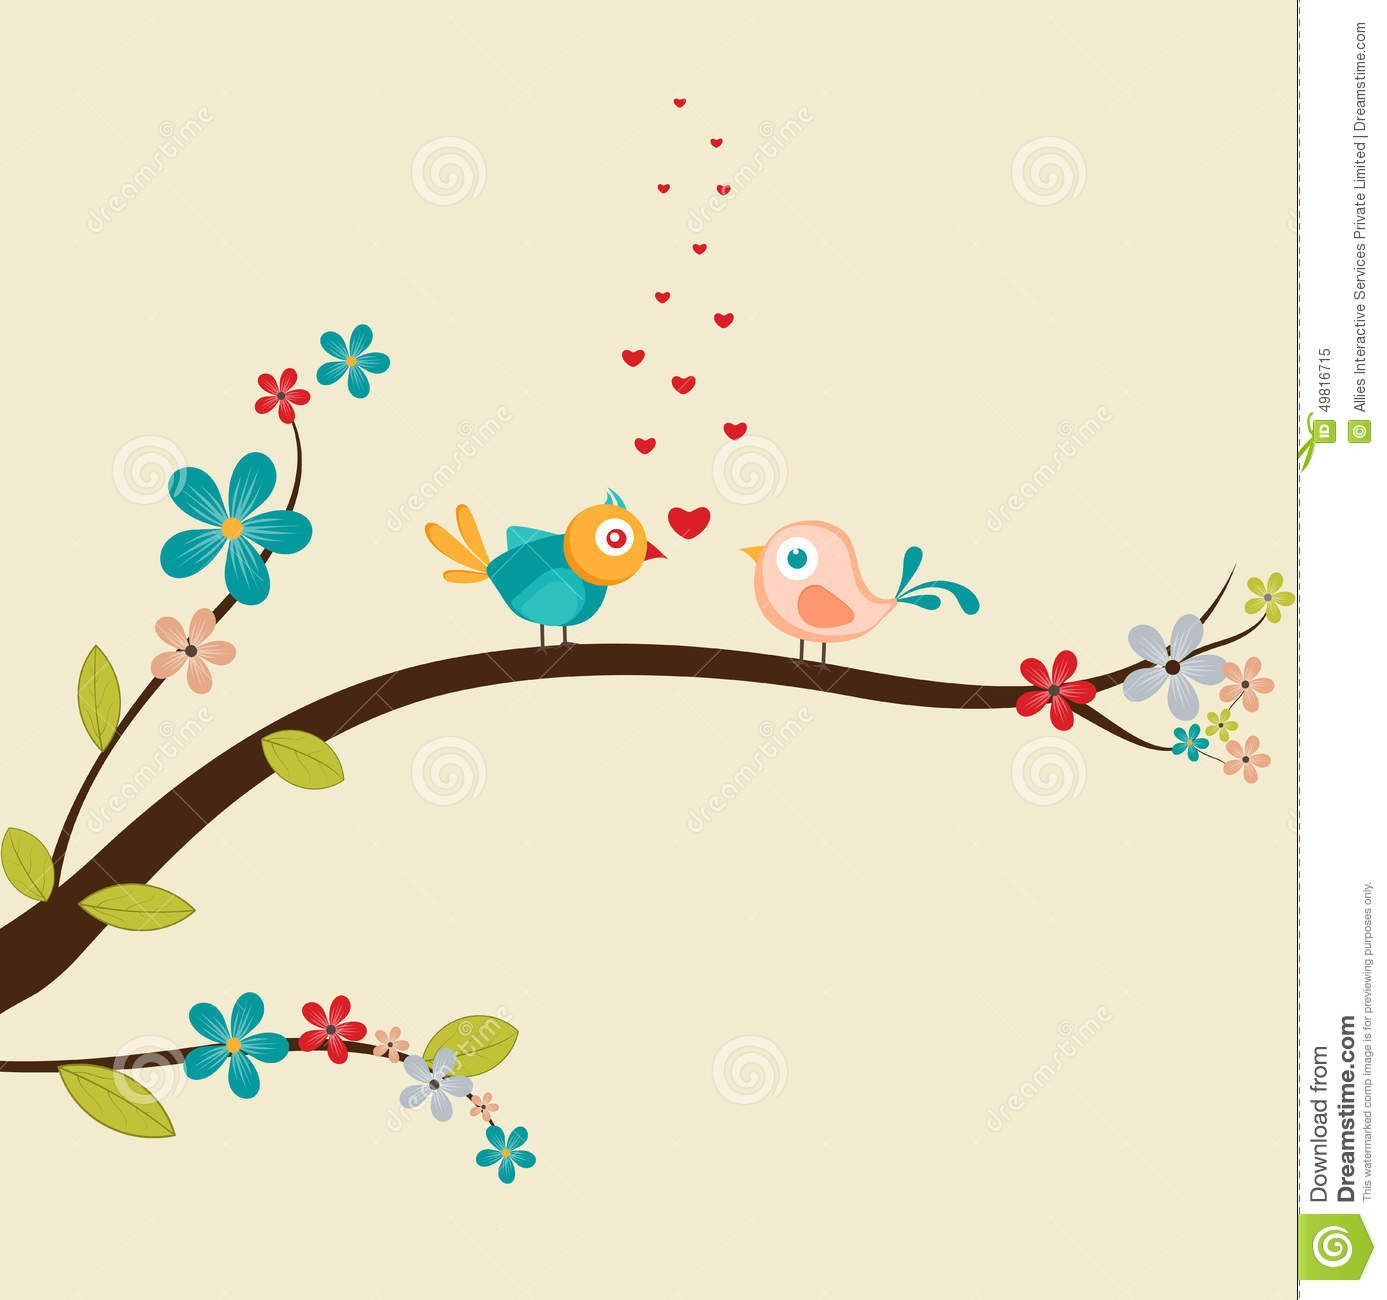 https://thumbs.dreamstime.com/z/cute-couple-love-bird-valentine-s-day-celebration-red-hearts-sitting-tree-branch-happy-49816715.jpg